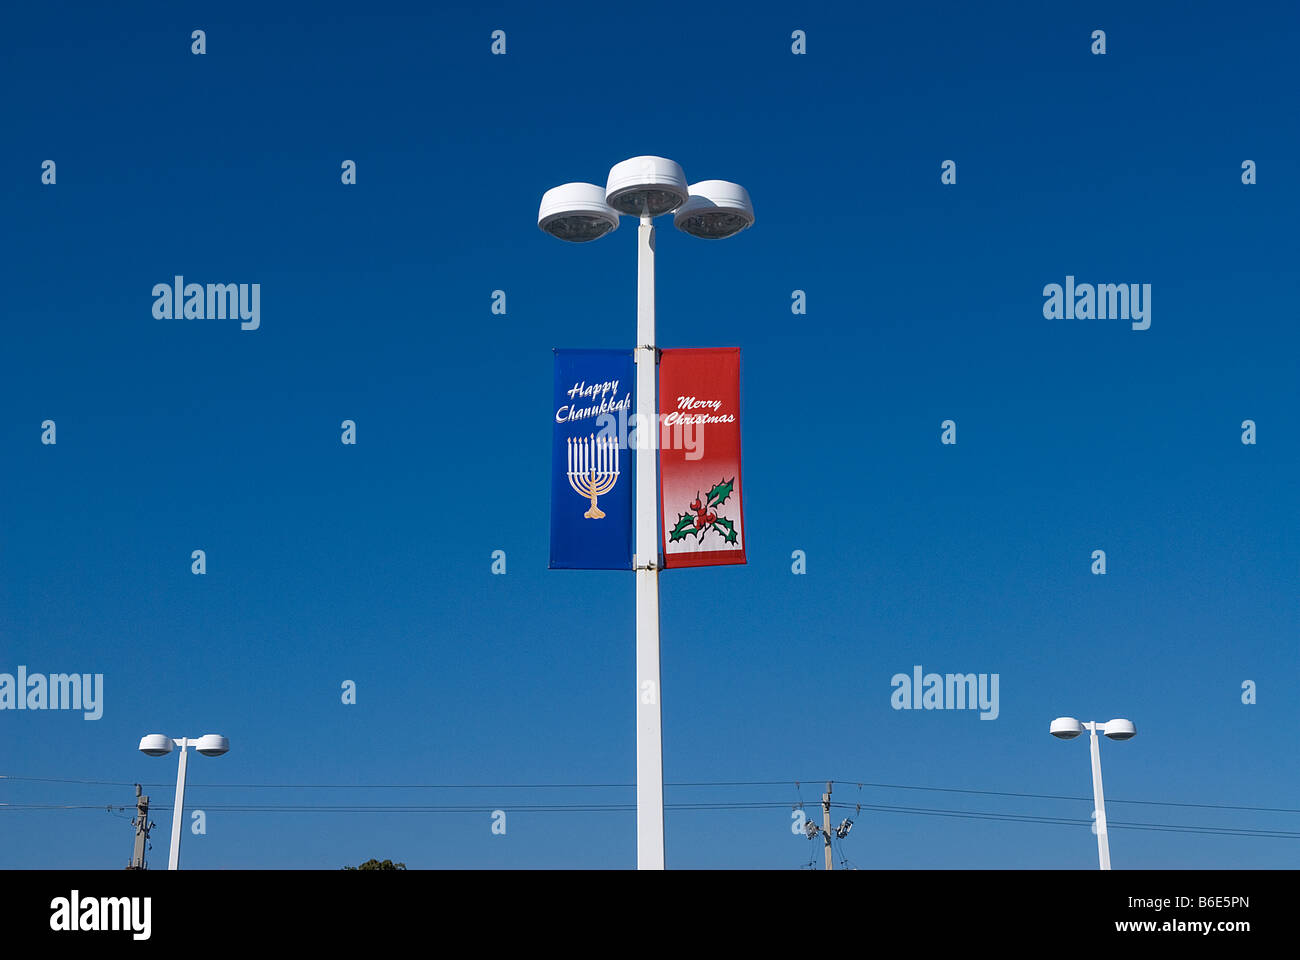 street lights with flags displaying Happy Chanukkah/Merry Christmas greetings - Stock Image